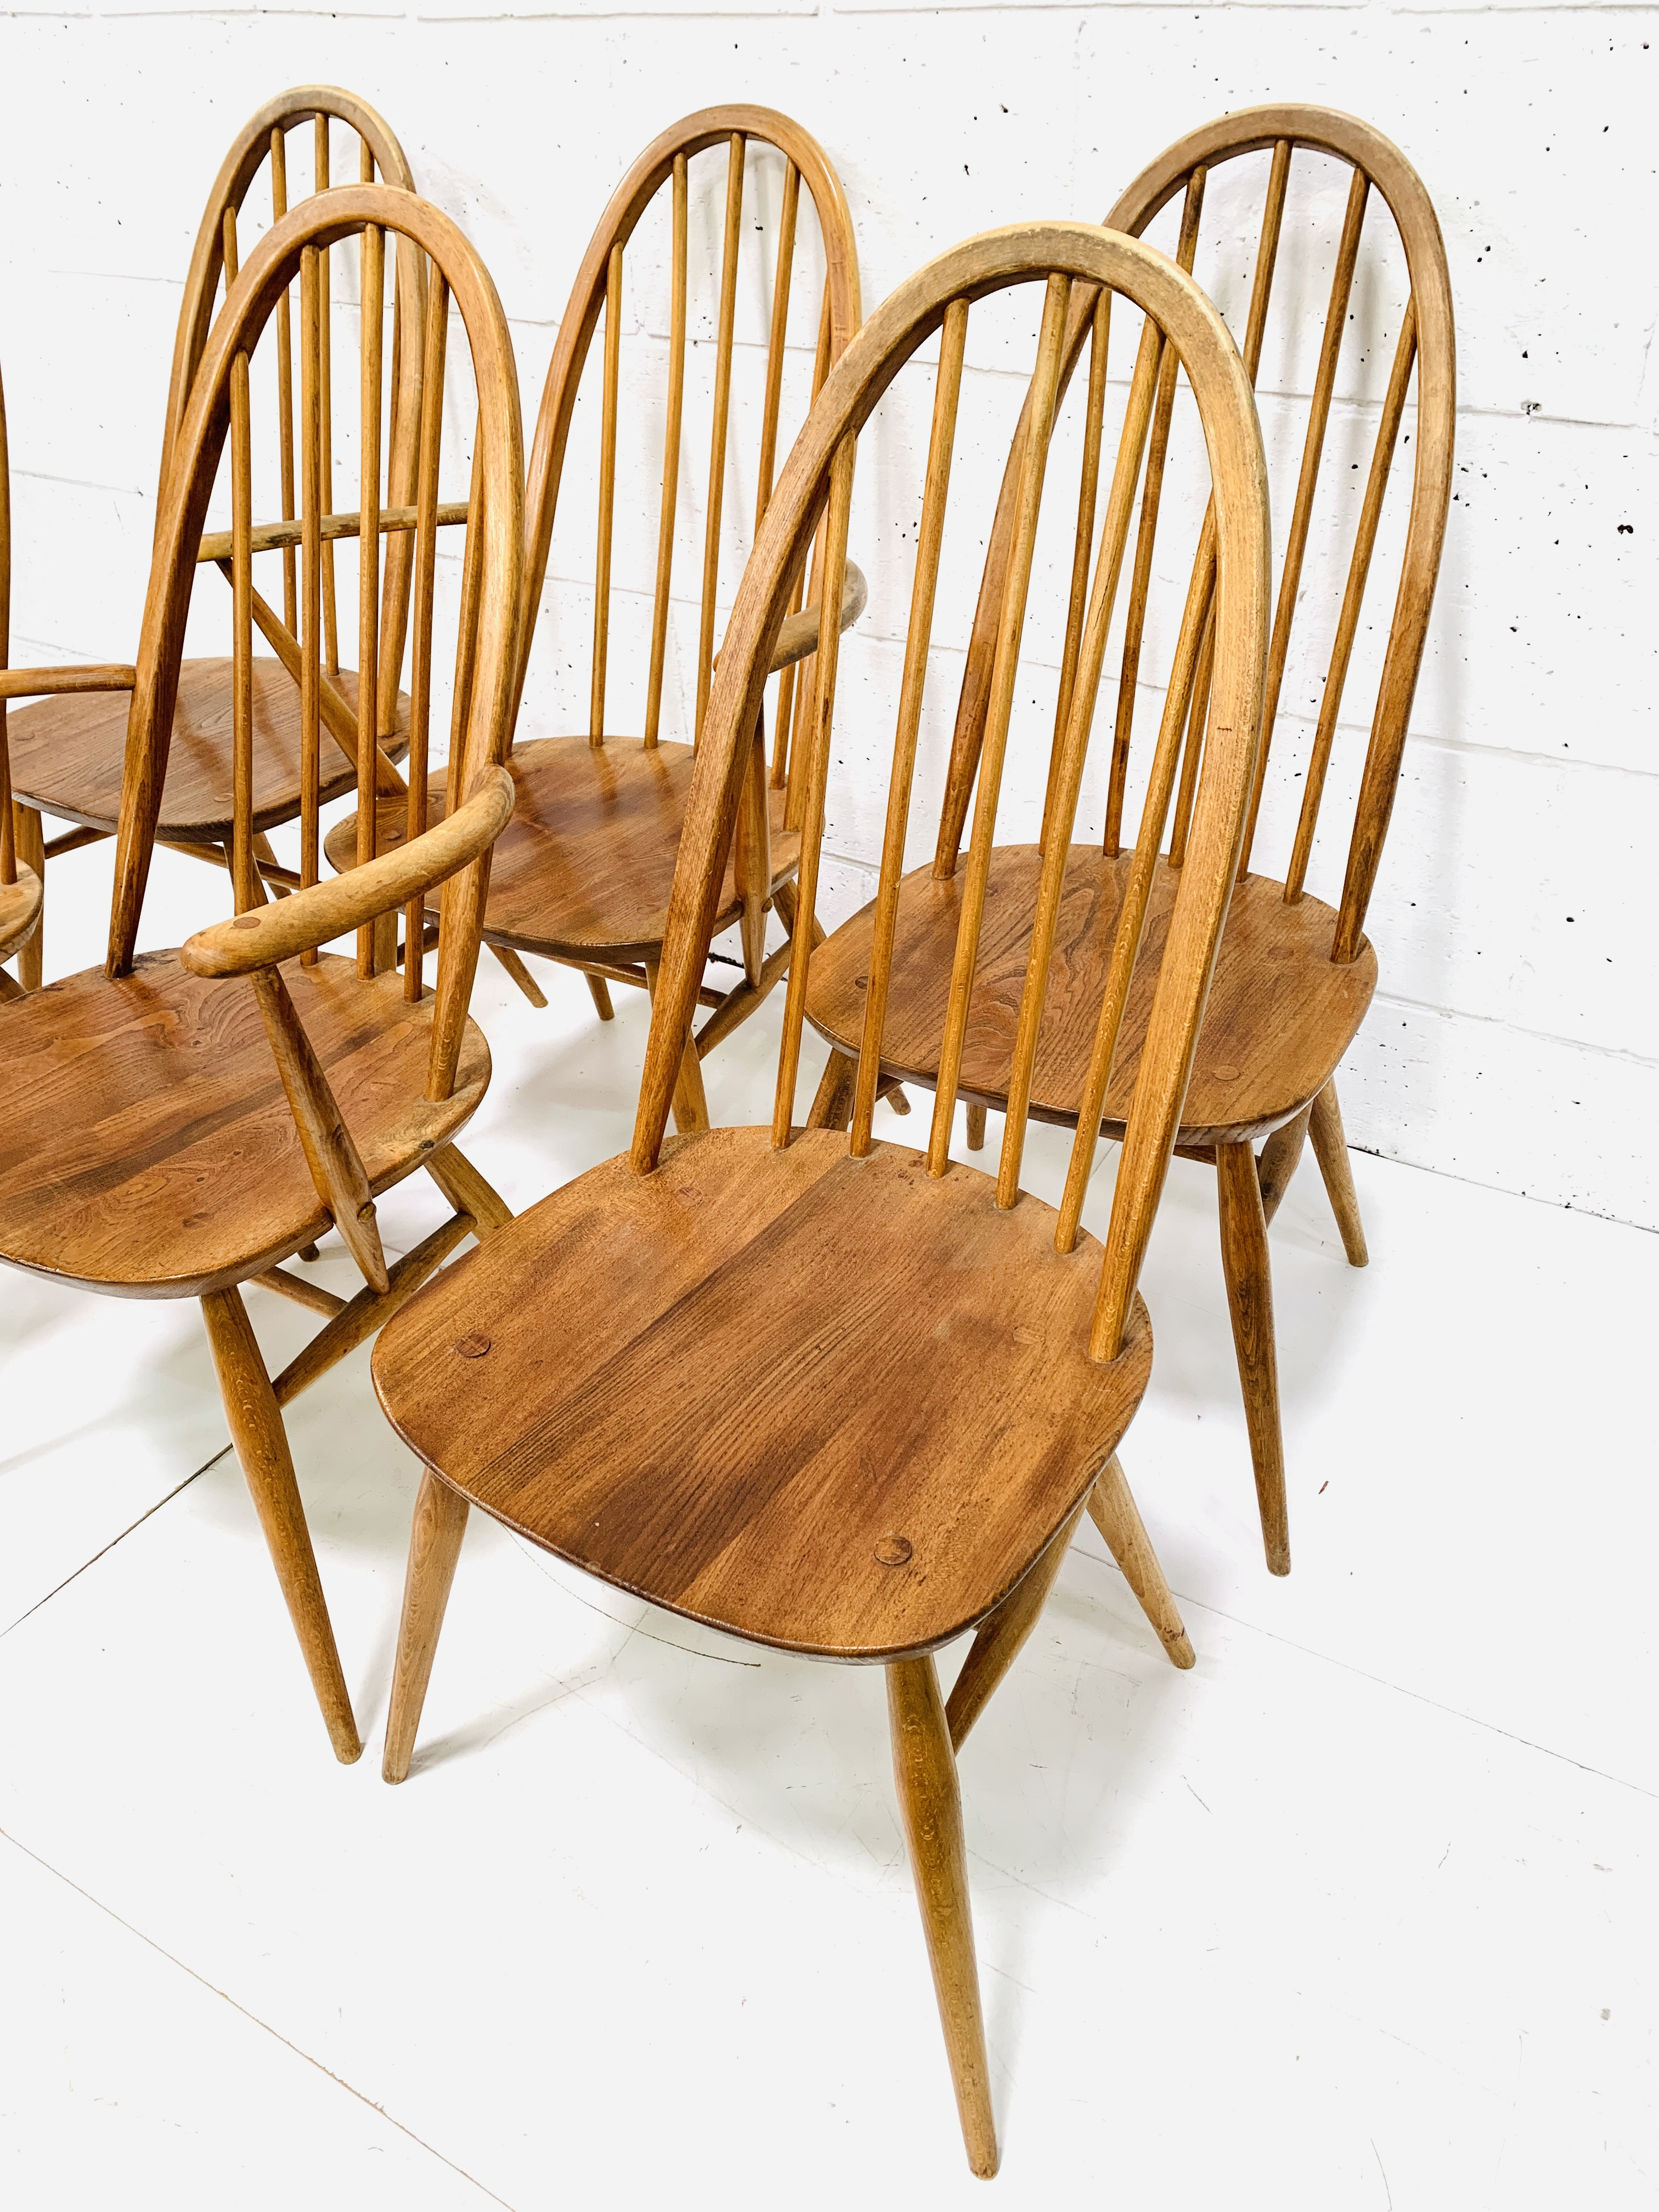 Set of six (4 + 2) Ercol high rail back dining chairs - Image 3 of 5